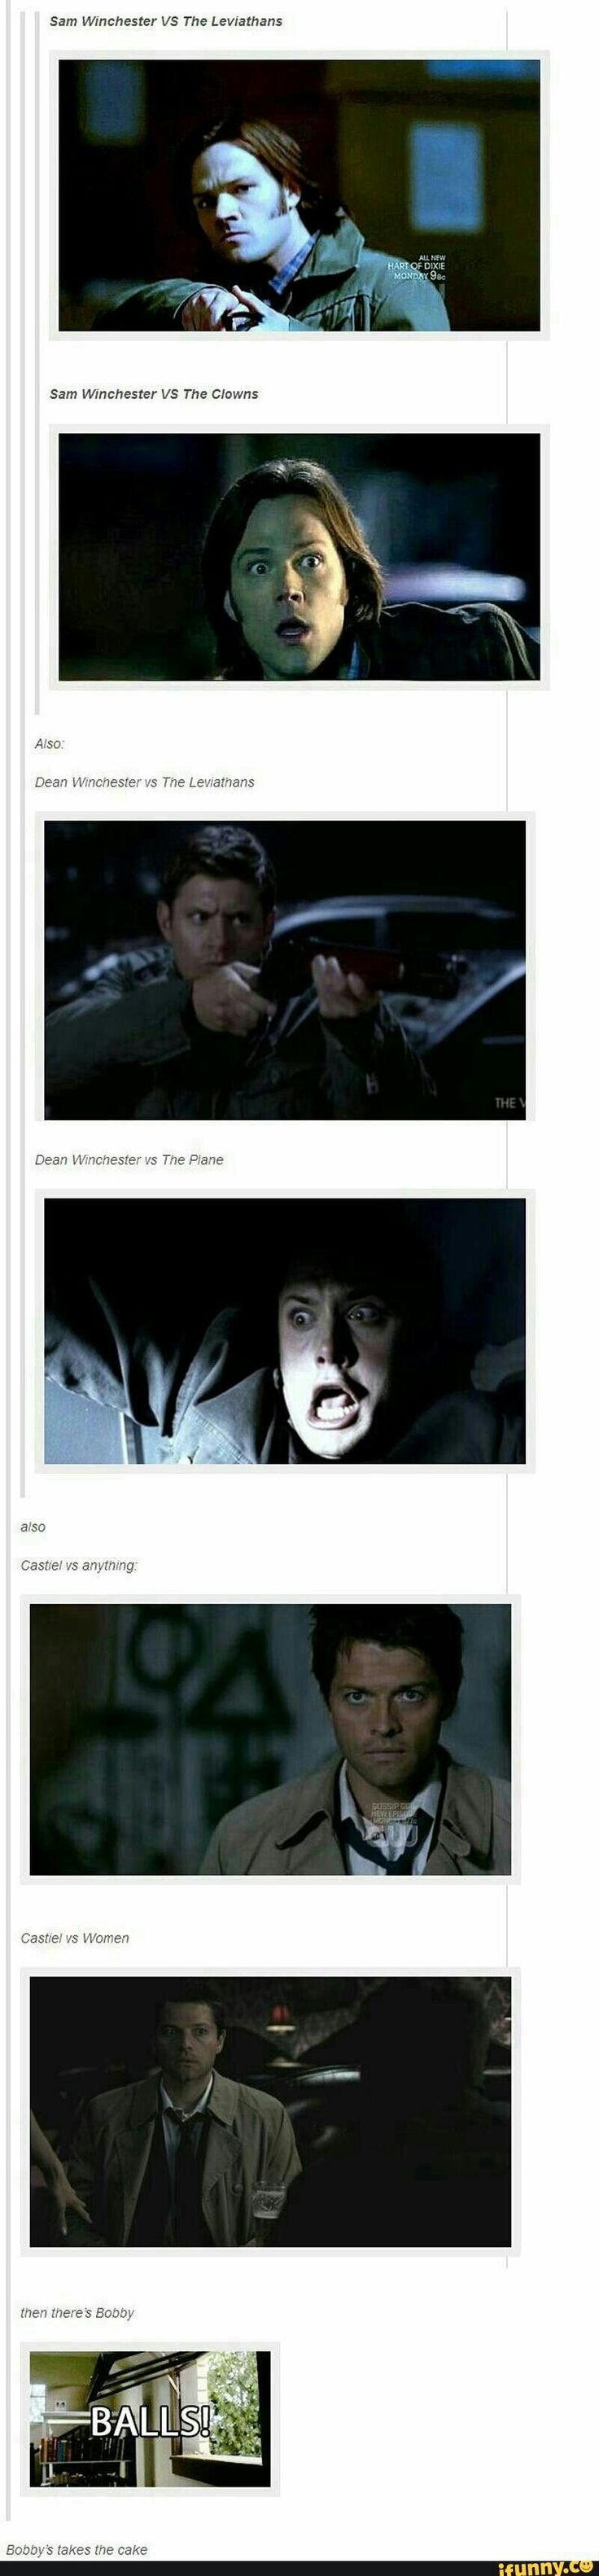 Dean Sam cas and bobby reactions toward monsters etc